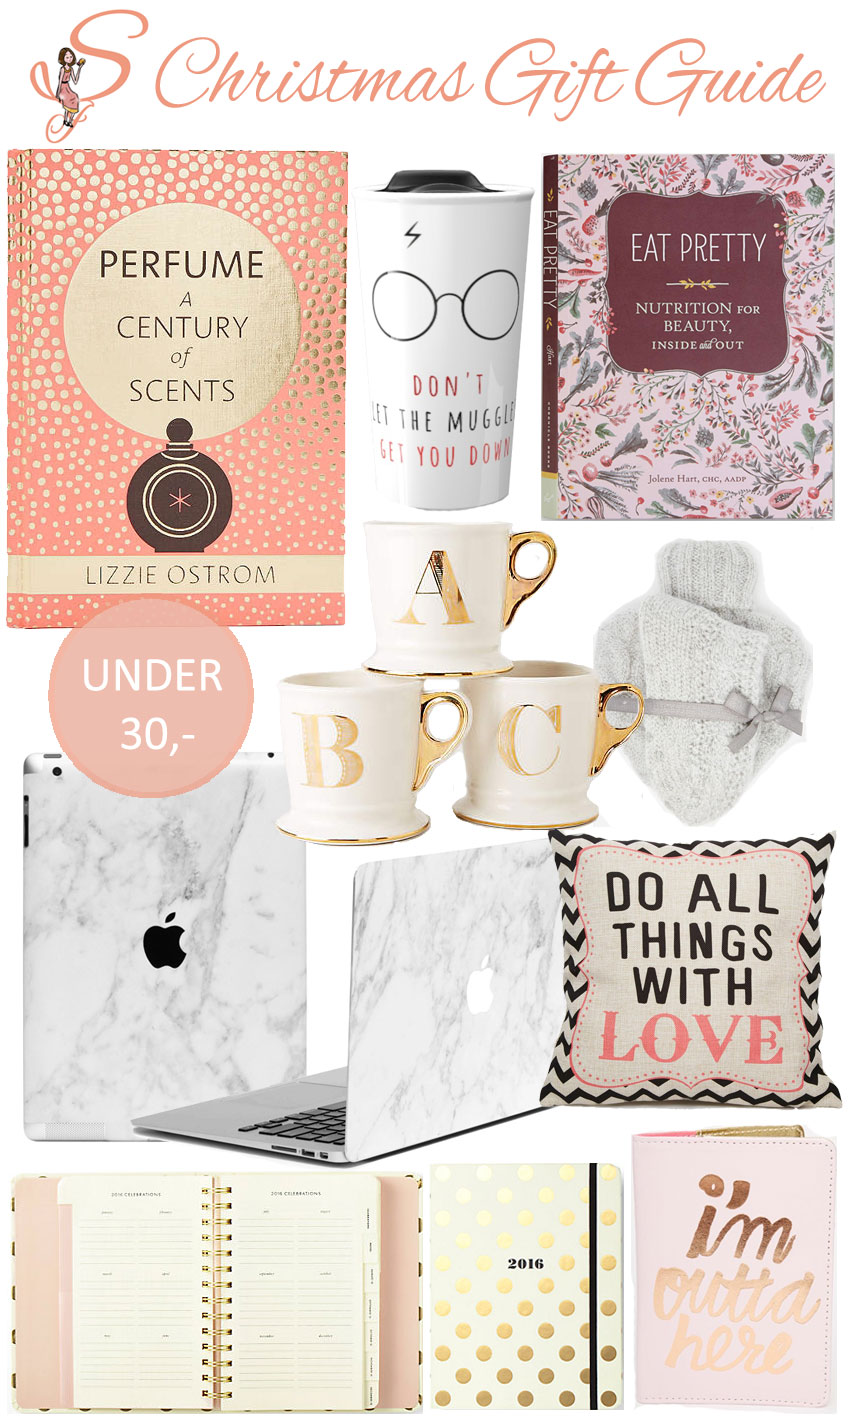 Selinasinspiration Style Fashion Blog Trend New Winter Collection Christmas Gift Guide Idea Inspiration under 30